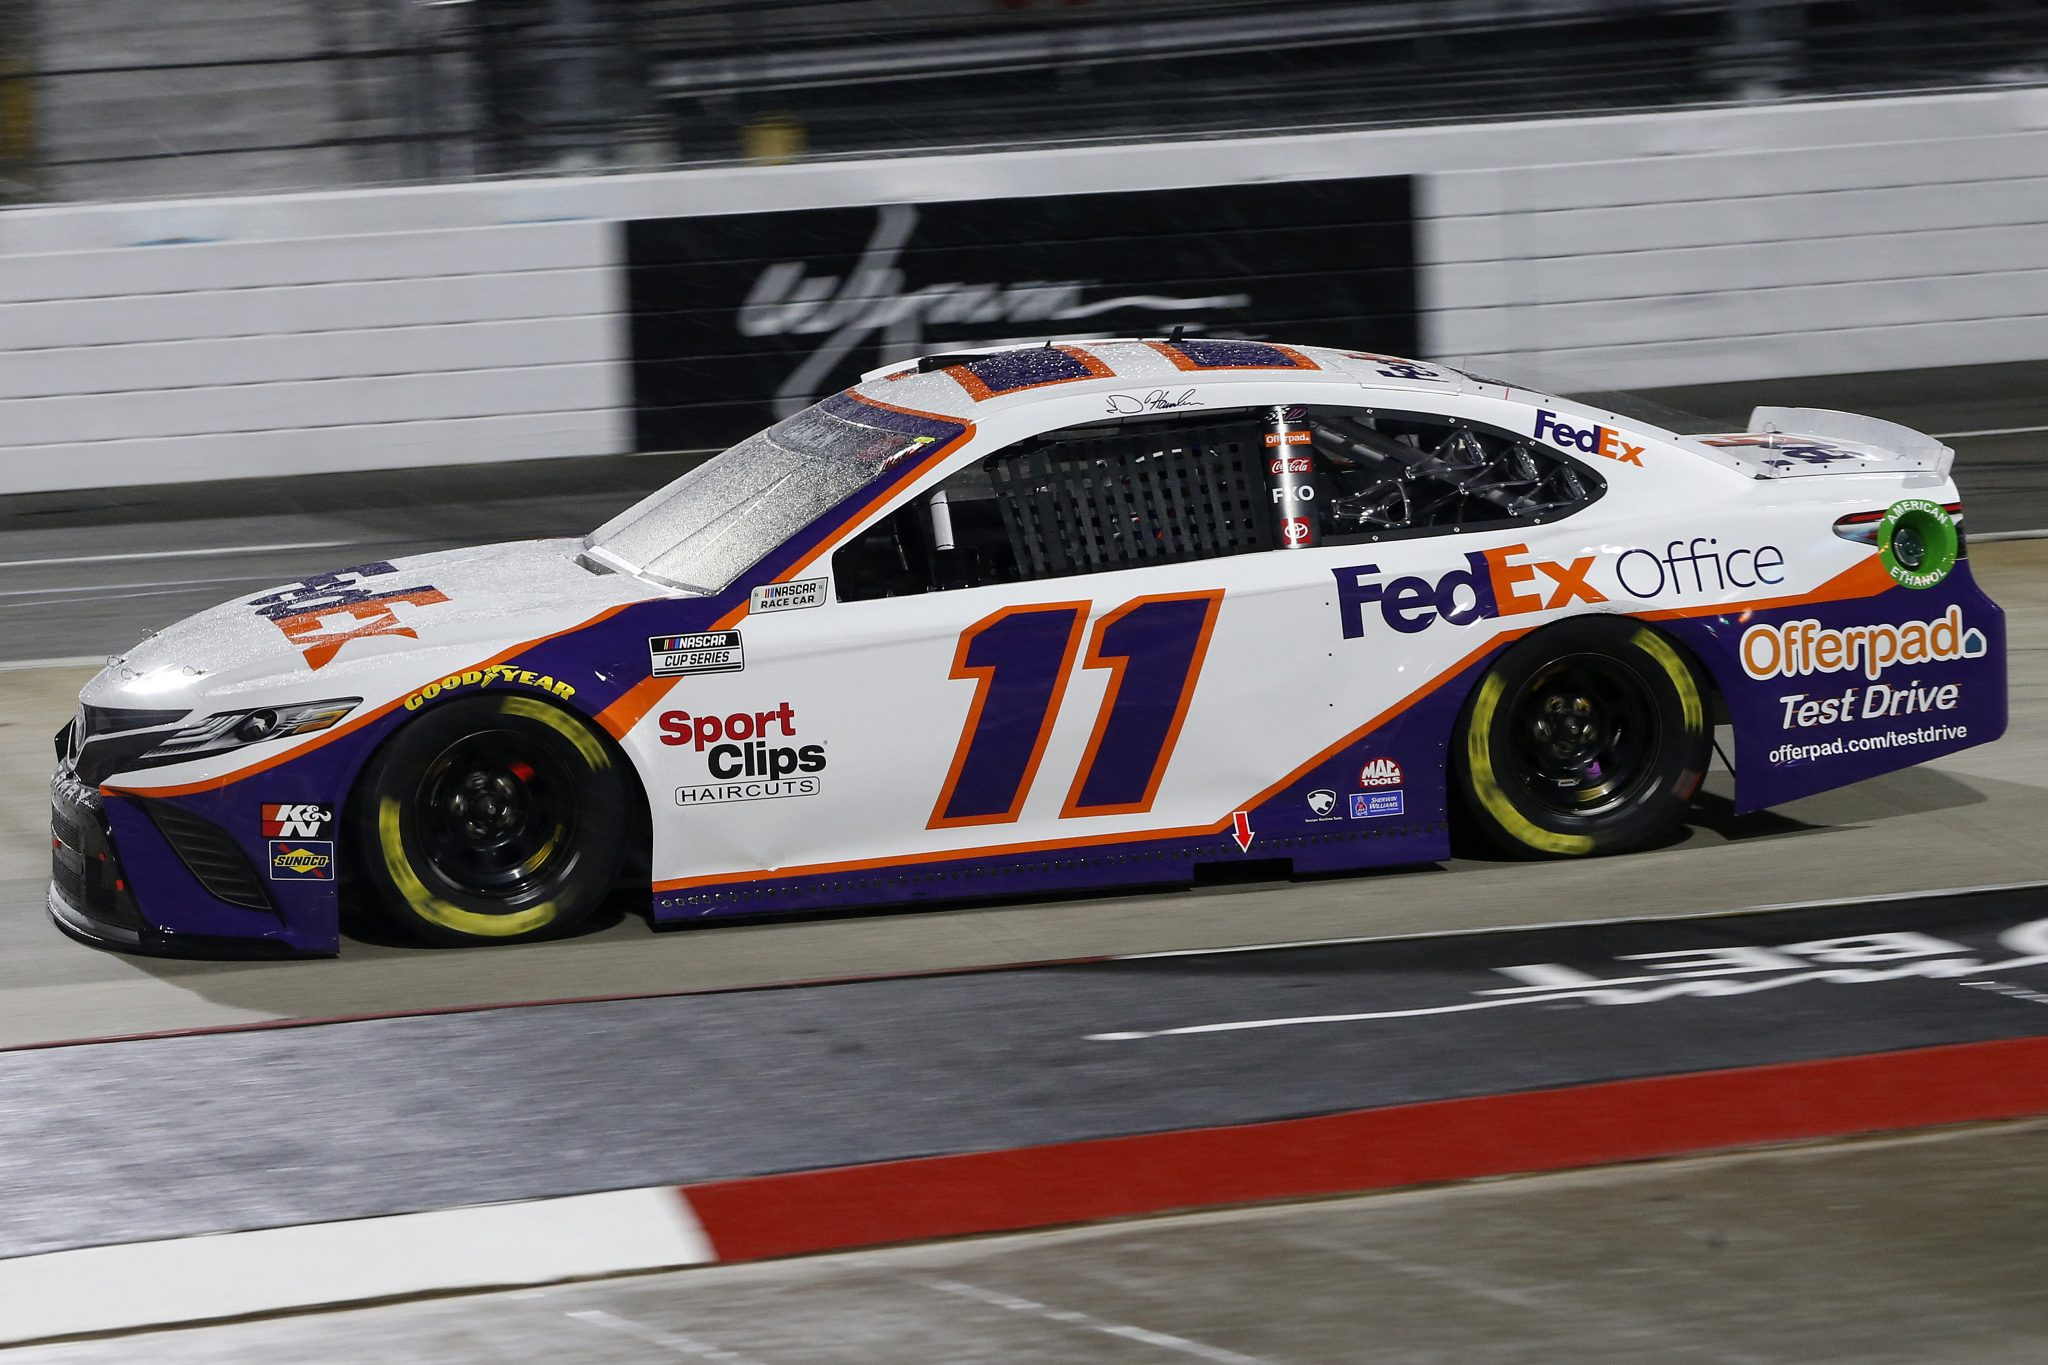 MARTINSVILLE, VIRGINIA - APRIL 10: Denny Hamlin, driver of the #11 FedEx Office Toyota, drives during the NASCAR Cup Series Blue-Emu Maximum Pain Relief 500 at Martinsville Speedway on April 10, 2021 in Martinsville, Virginia. (Photo by Brian Lawdermilk/Getty Images) | Getty Images